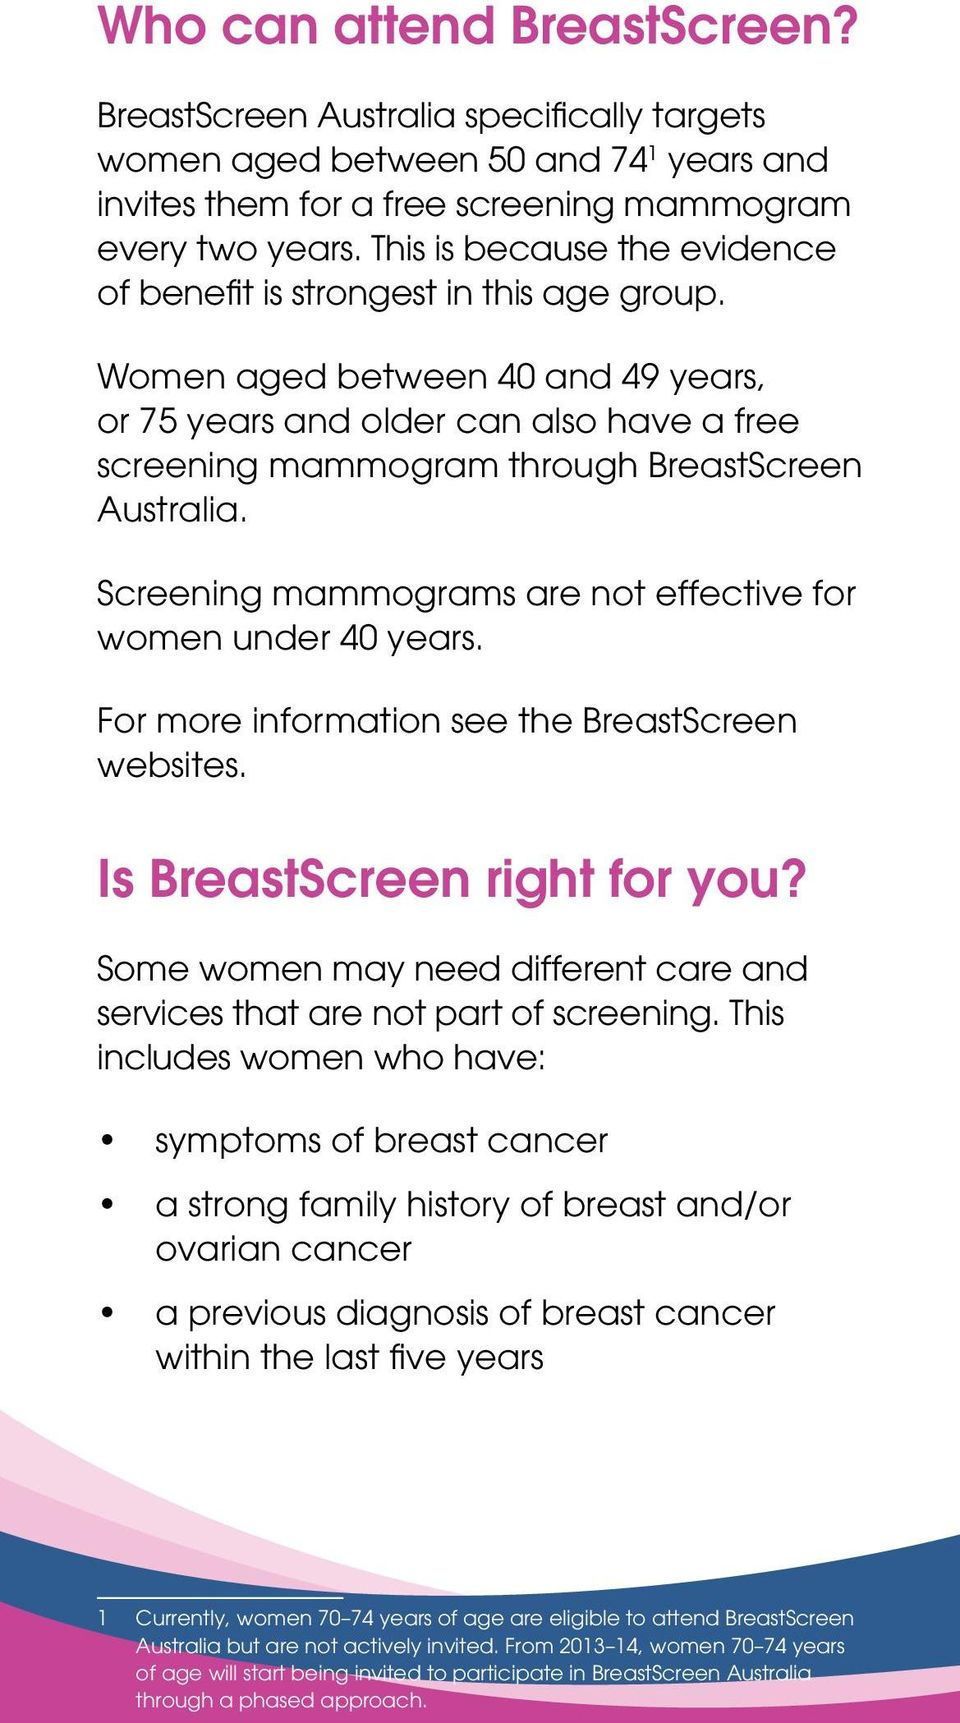 Women aged between 40 and 49 years, or 75 years and older can also have a free screening mammogram through BreastScreen Australia. Screening mammograms are not effective for women under 40 years.